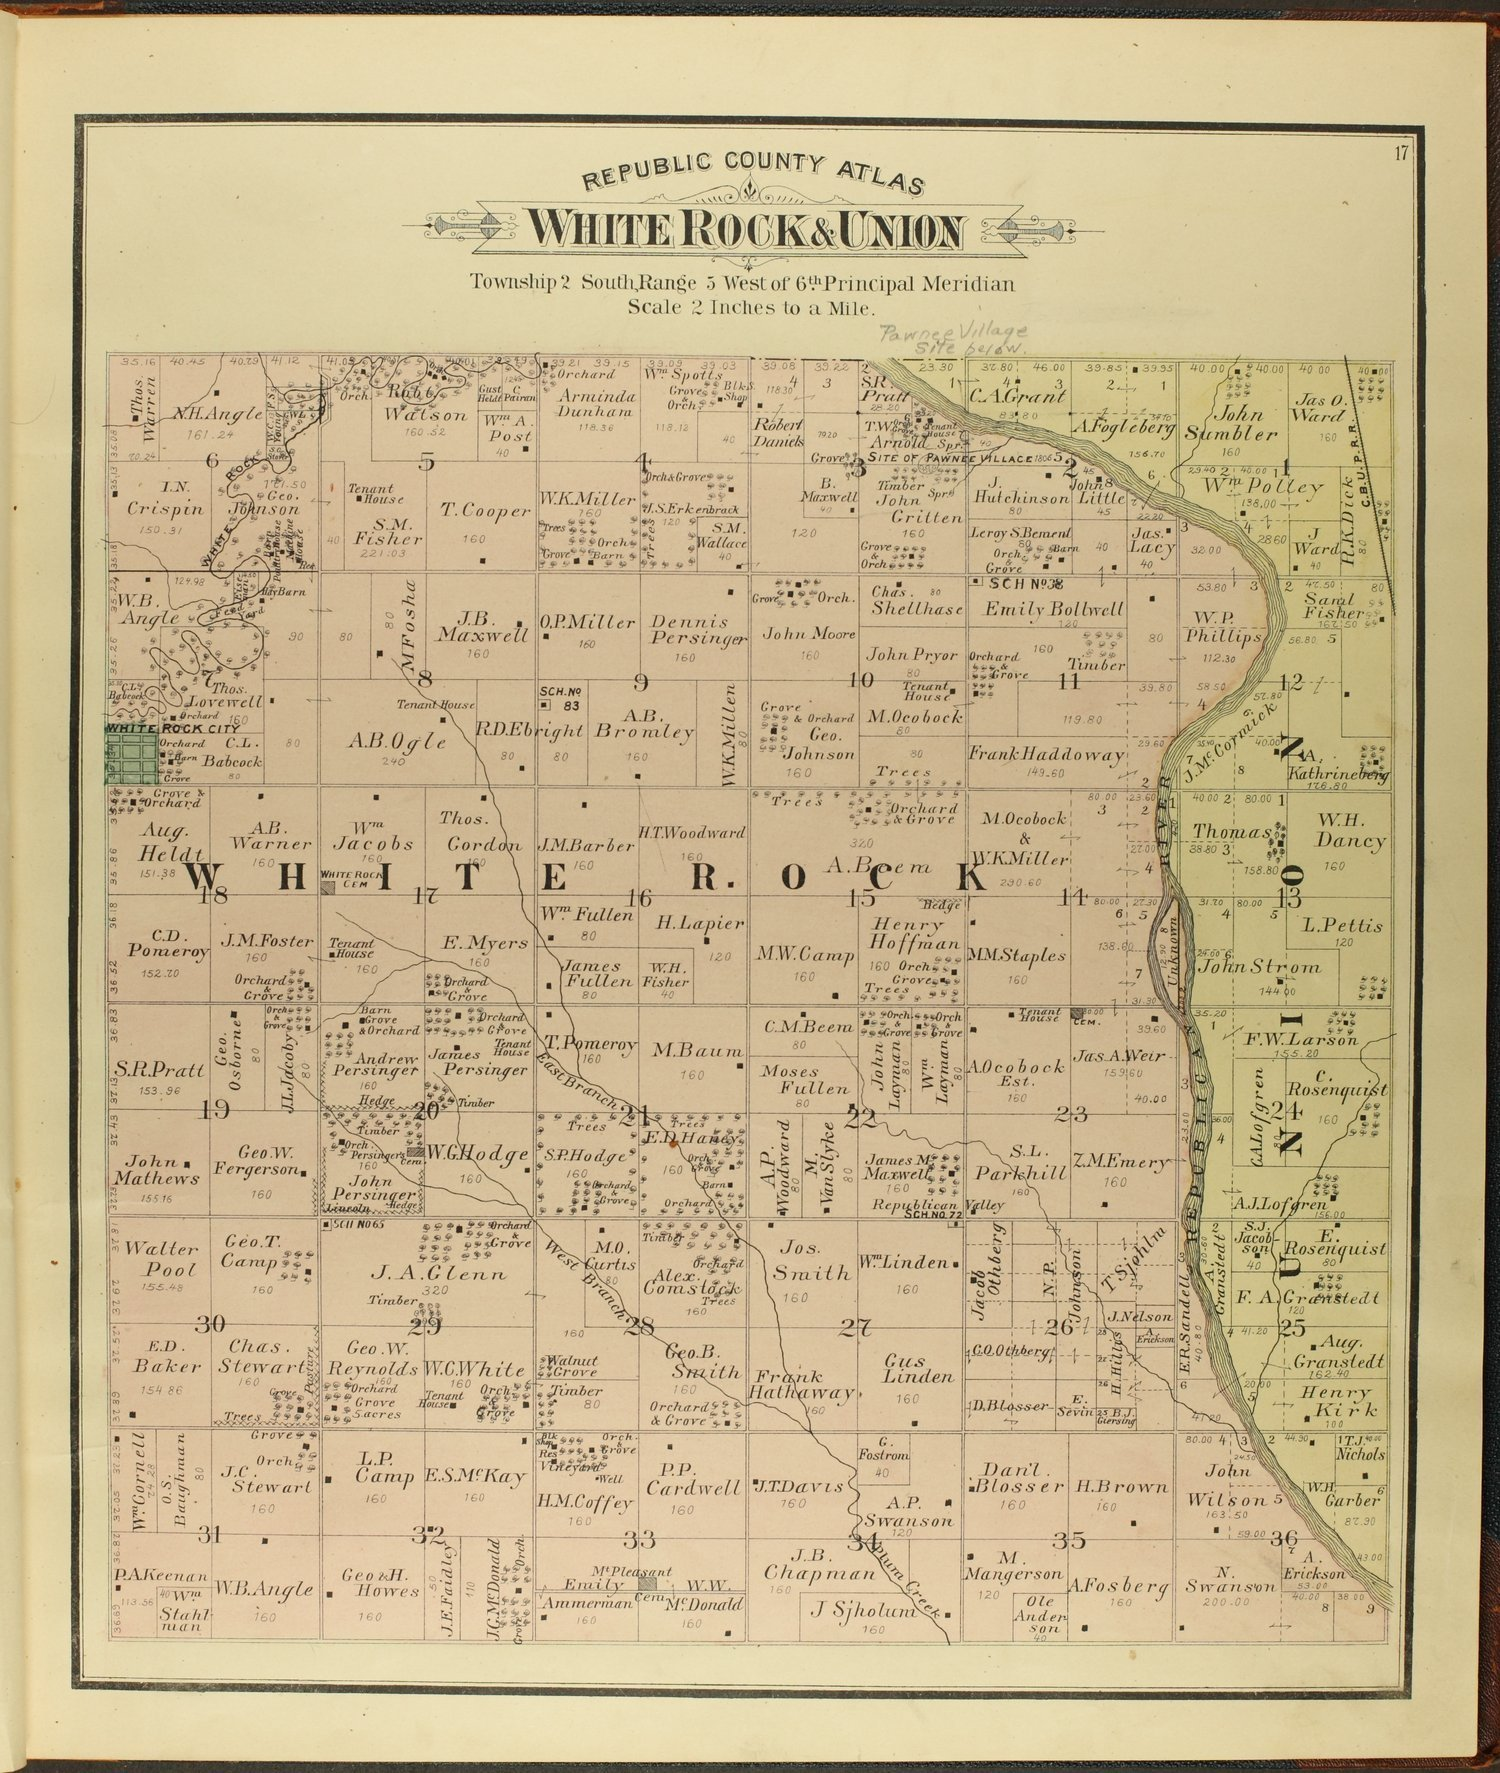 Atlas of Republic County, Kansas - 17